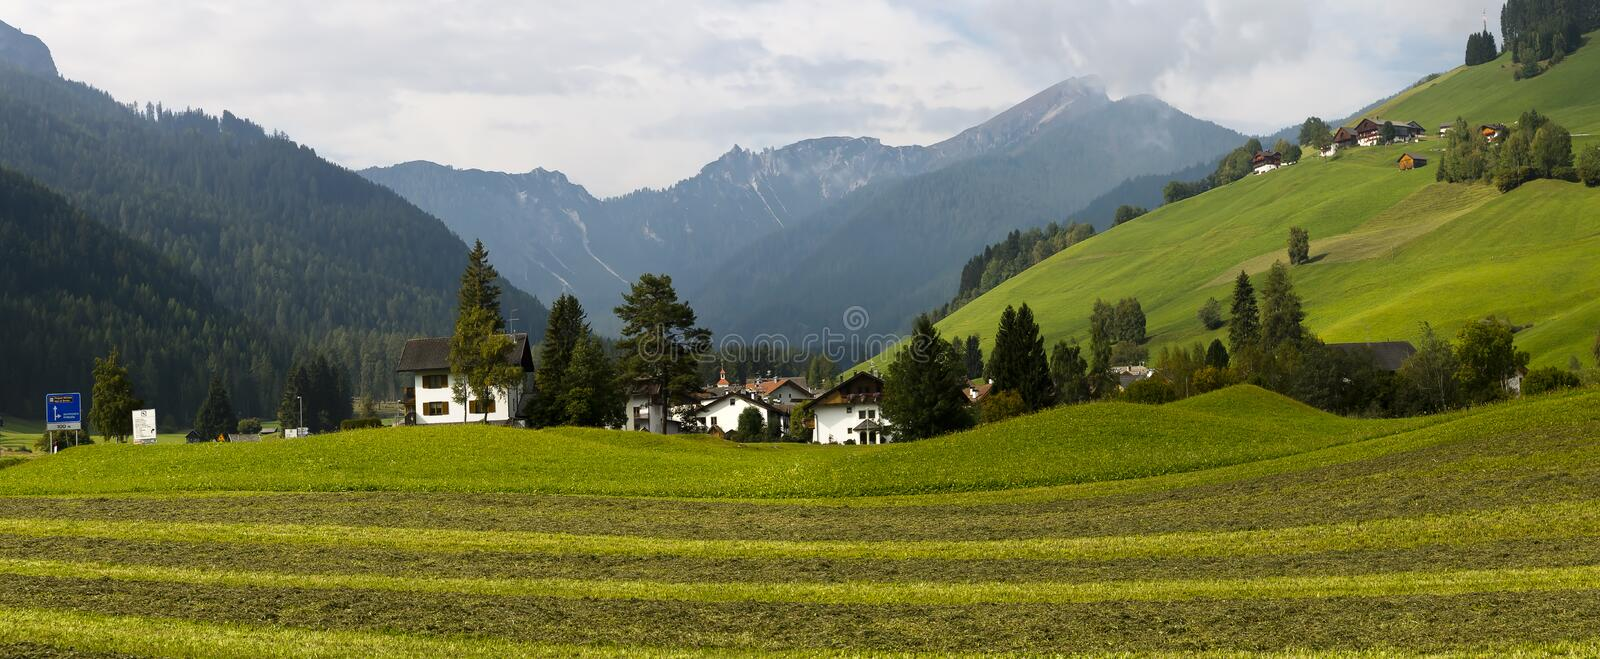 Country side landscape, Italy stock photos